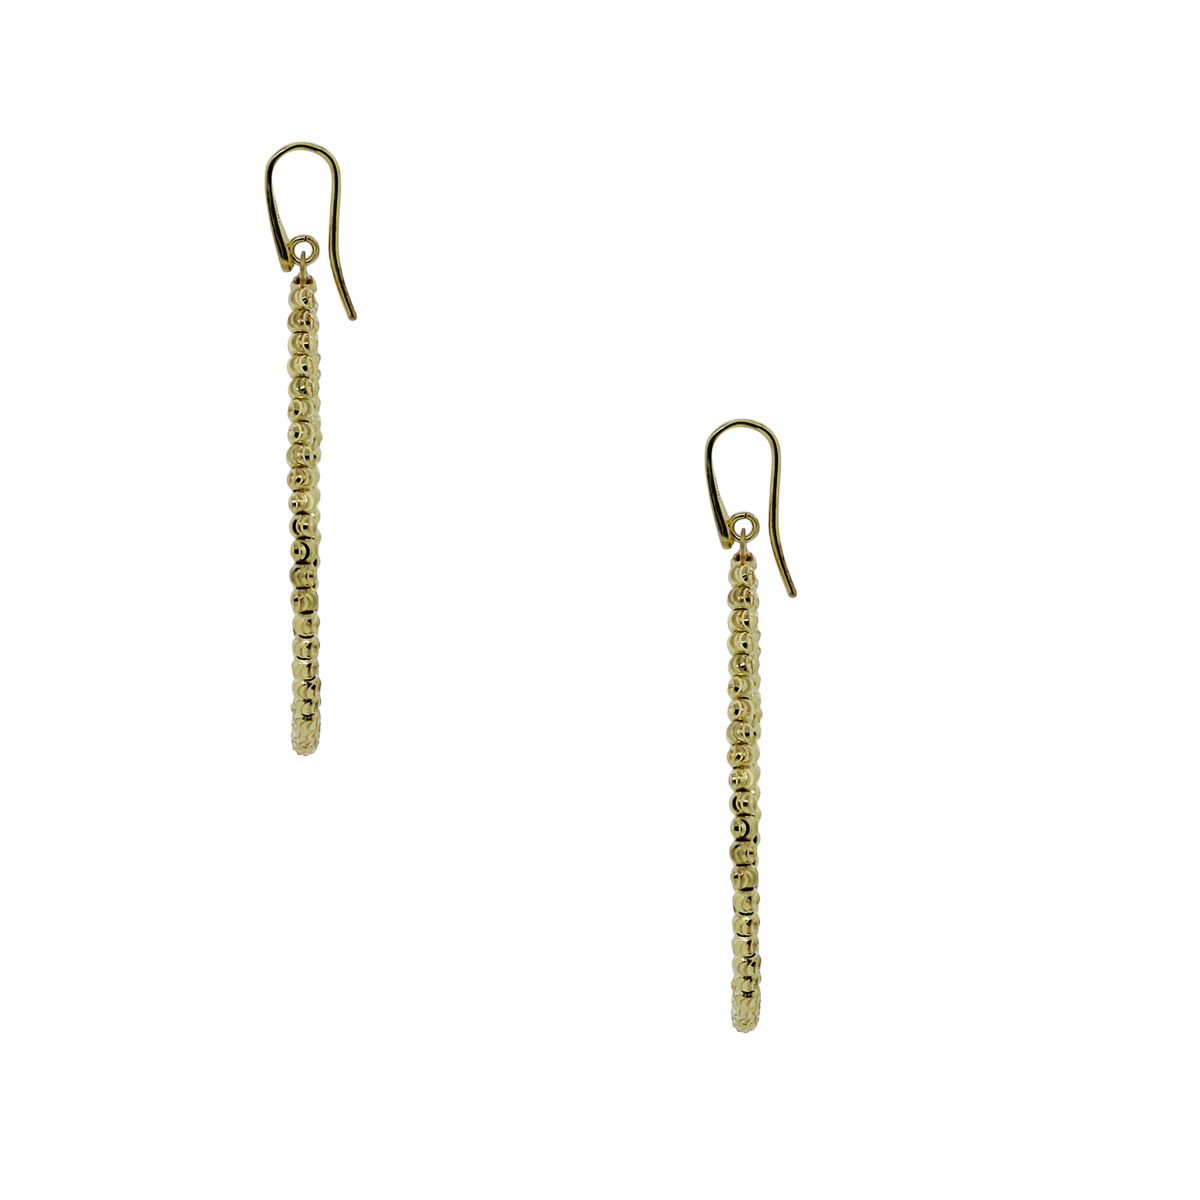 Officina Bernardi SS & 18k Gold Tear Drop Earrings